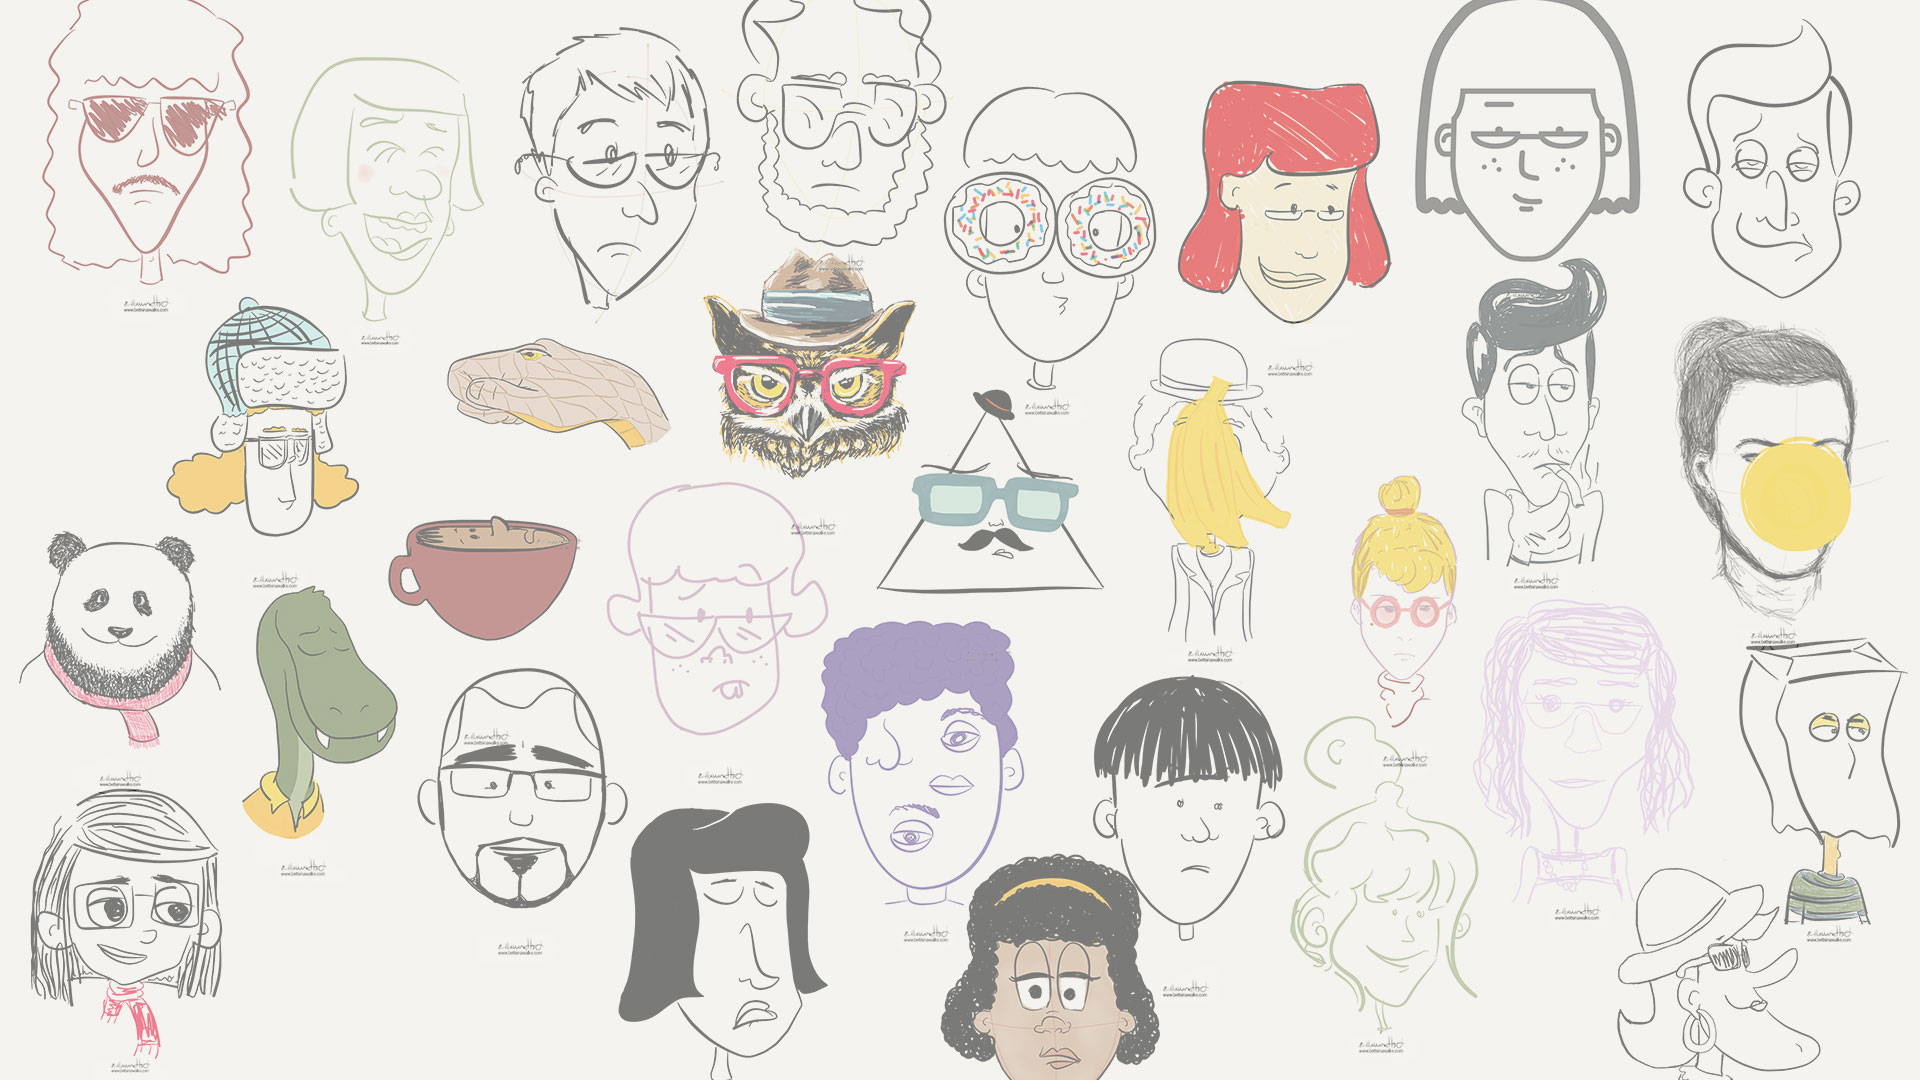 Snippet of the 'Drawing a face everyday project' - a collection of 201 different faces.